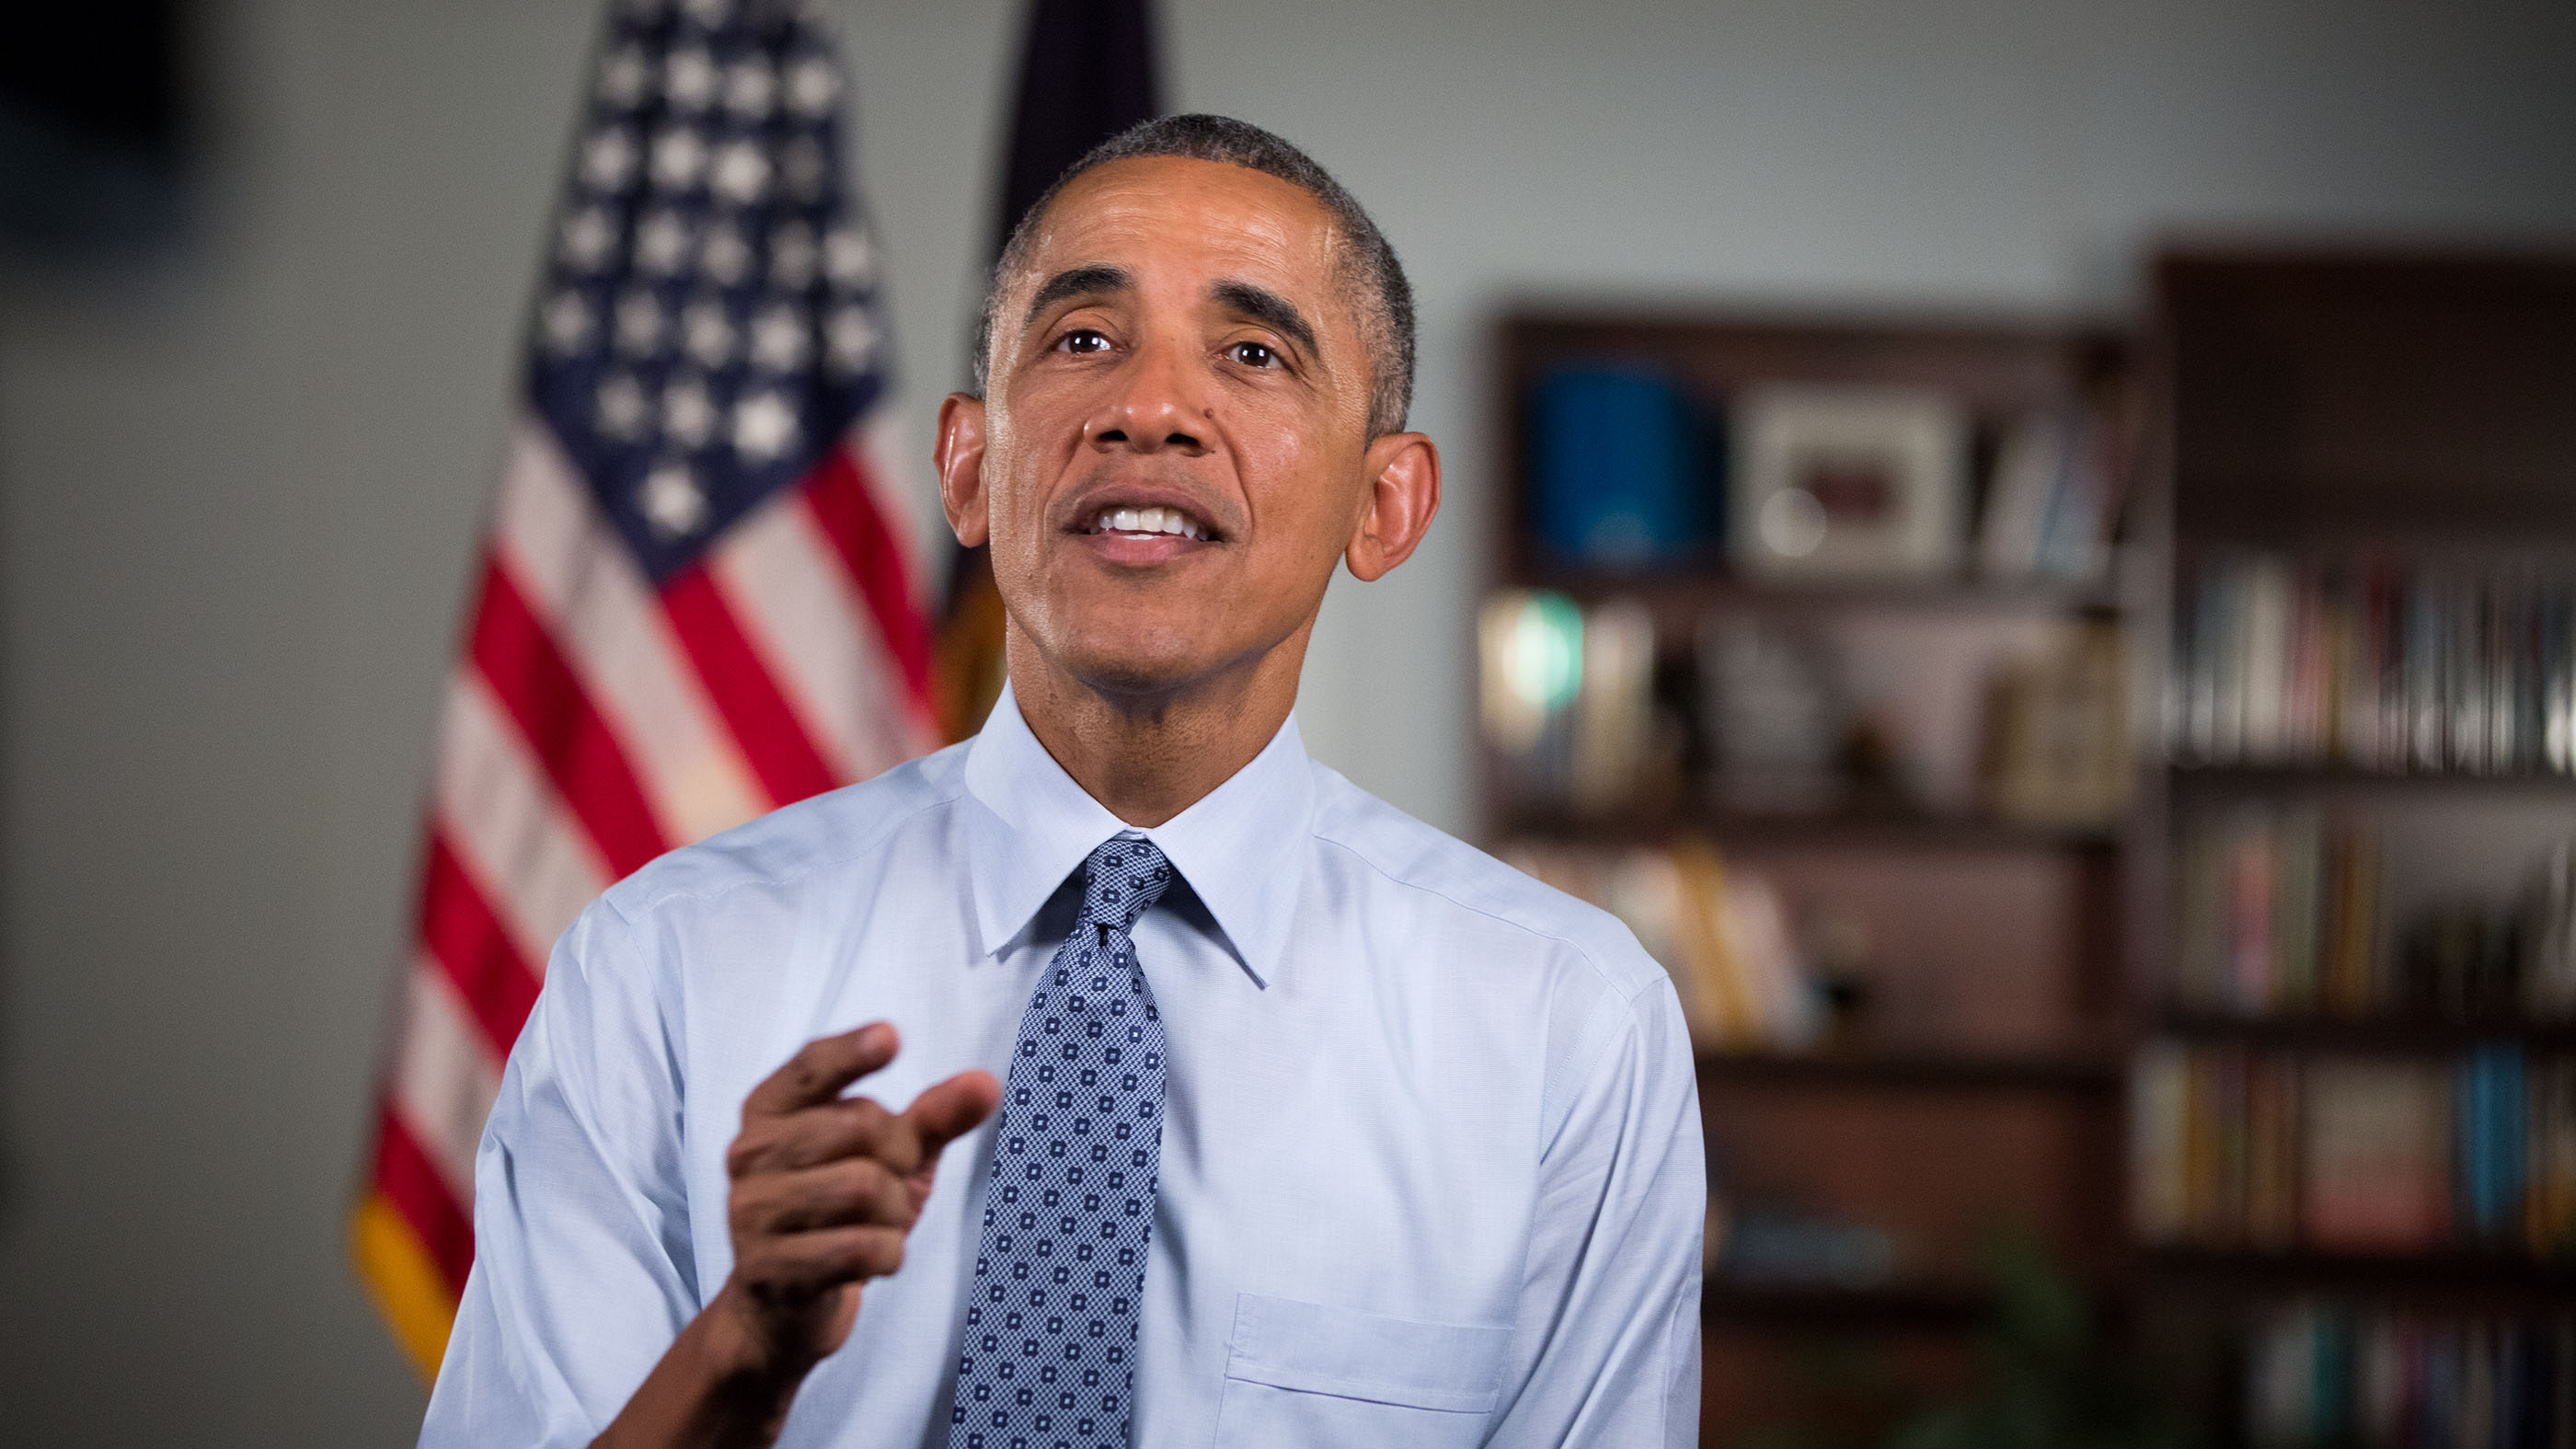 President Barack Obama tapes his weekly address following remarks on the economy at the University of Wisconsin in La Crosse, Wisconsin, July 2, 2015.